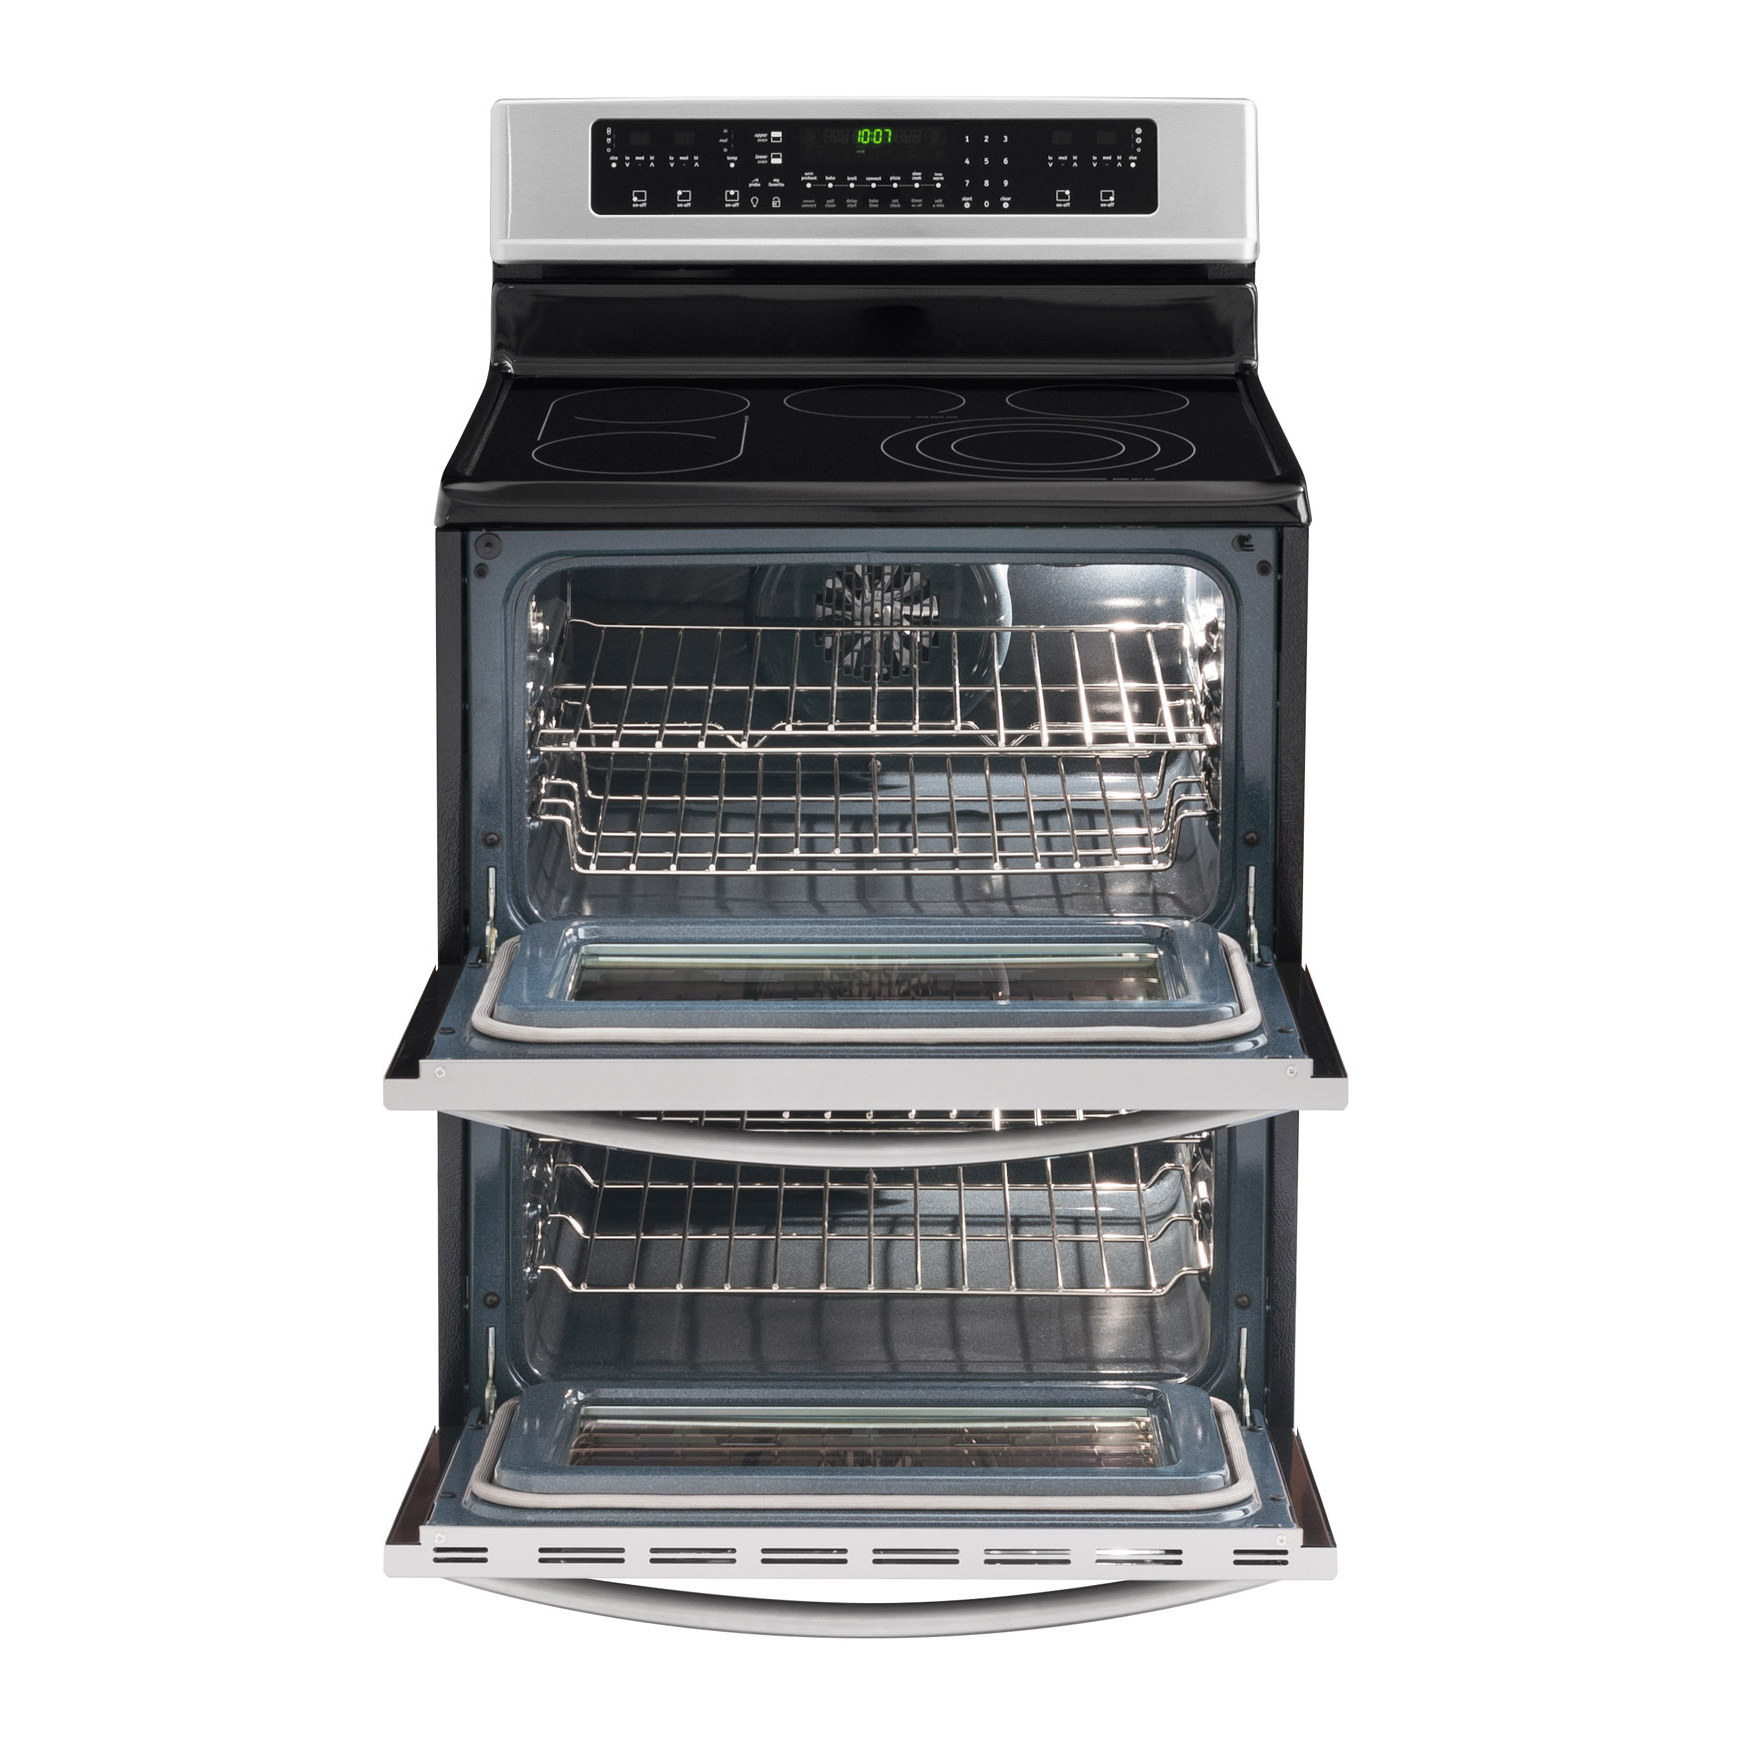 Frigidaire Gallery Gallery 6.6 cu. ft. Double-Oven Electric Range - Stainless Steel